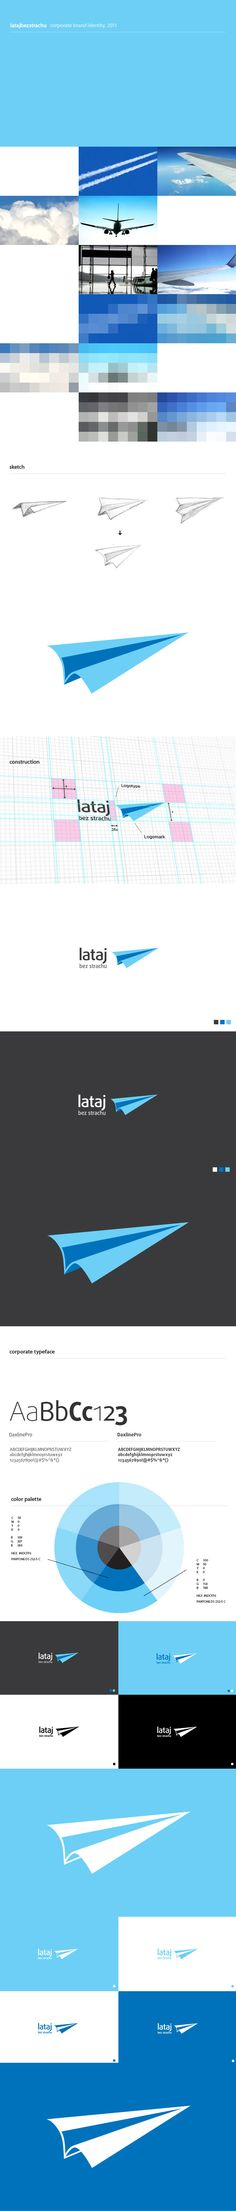 Logo design process for latajbeststrachu.pl